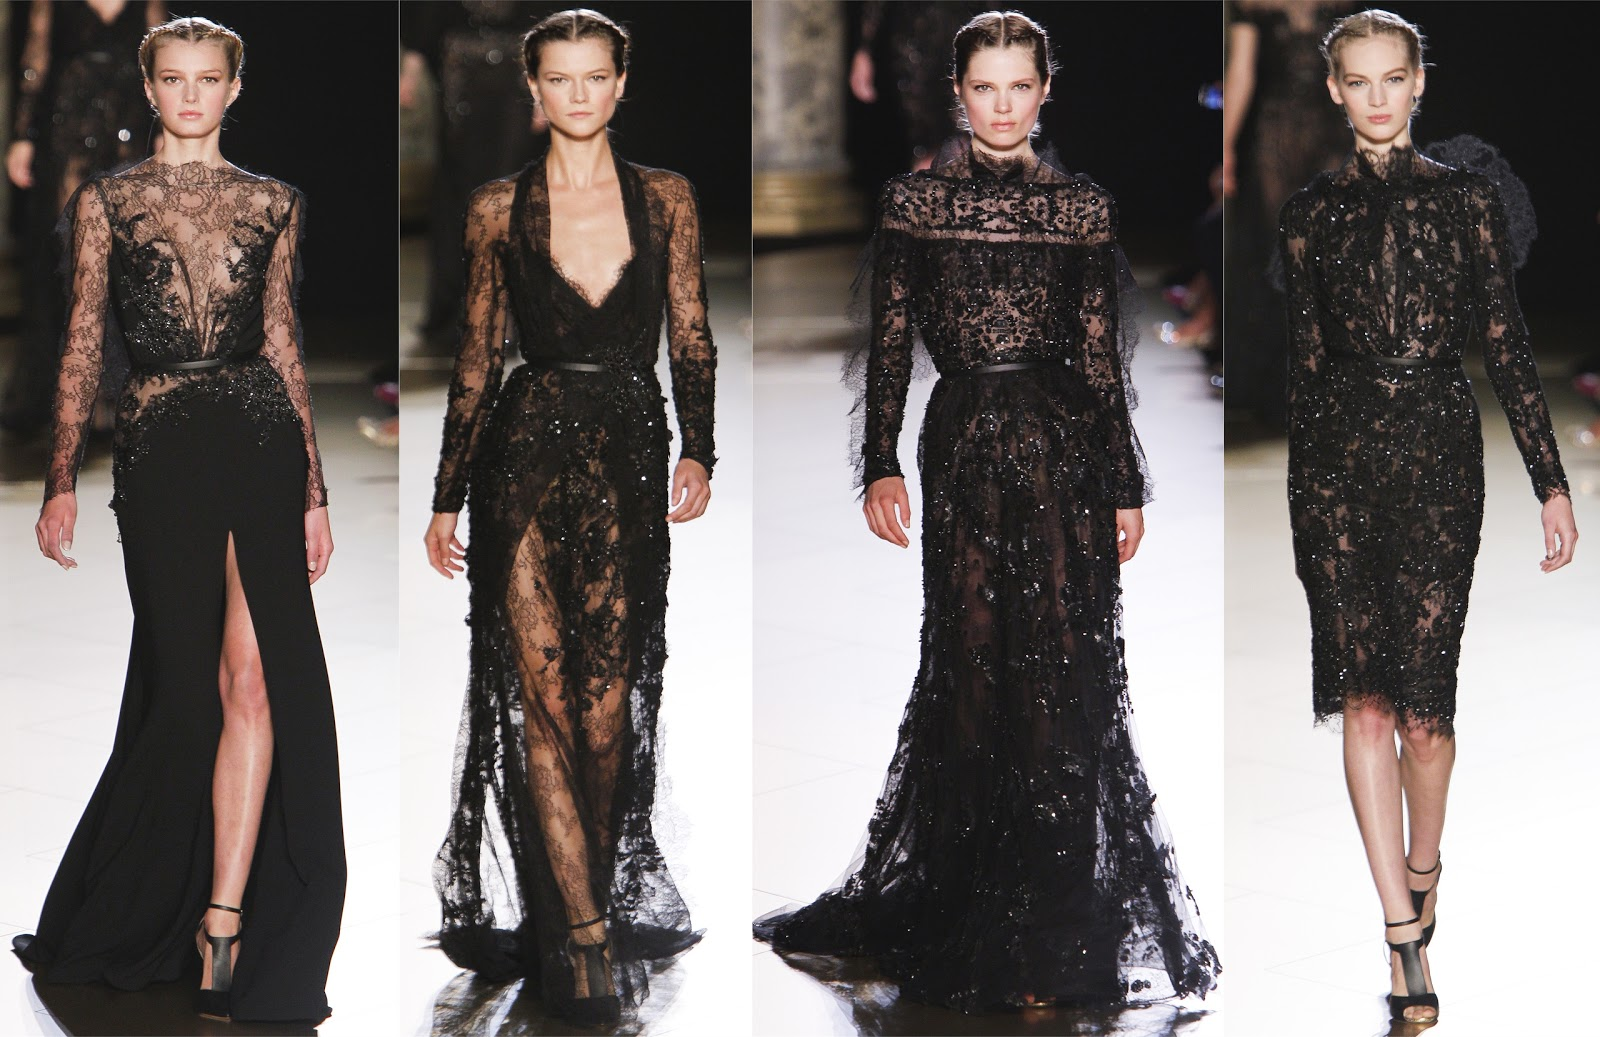 http://1.bp.blogspot.com/-mVA52mt0ATI/UKQpg8p-fQI/AAAAAAAAAr4/85OlXWpegWo/s1600/elie-saab-haute-couture-fall-winter-2012-2013-collection-runway-black-lace-dresses.jpg